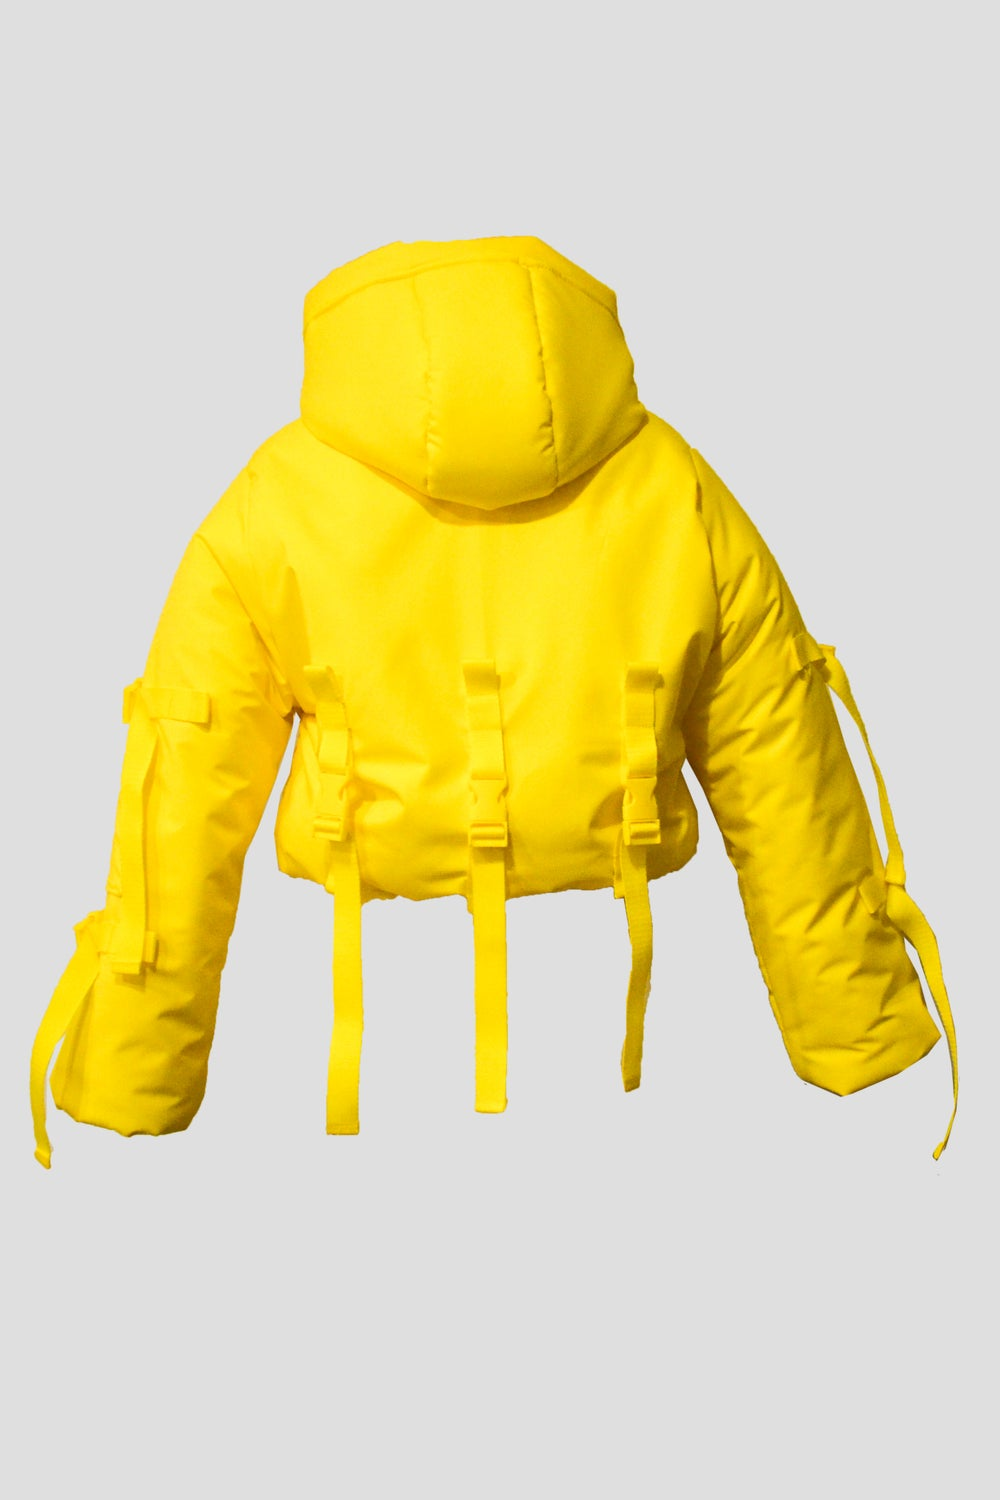 Image of Yellow Puffer Jacket